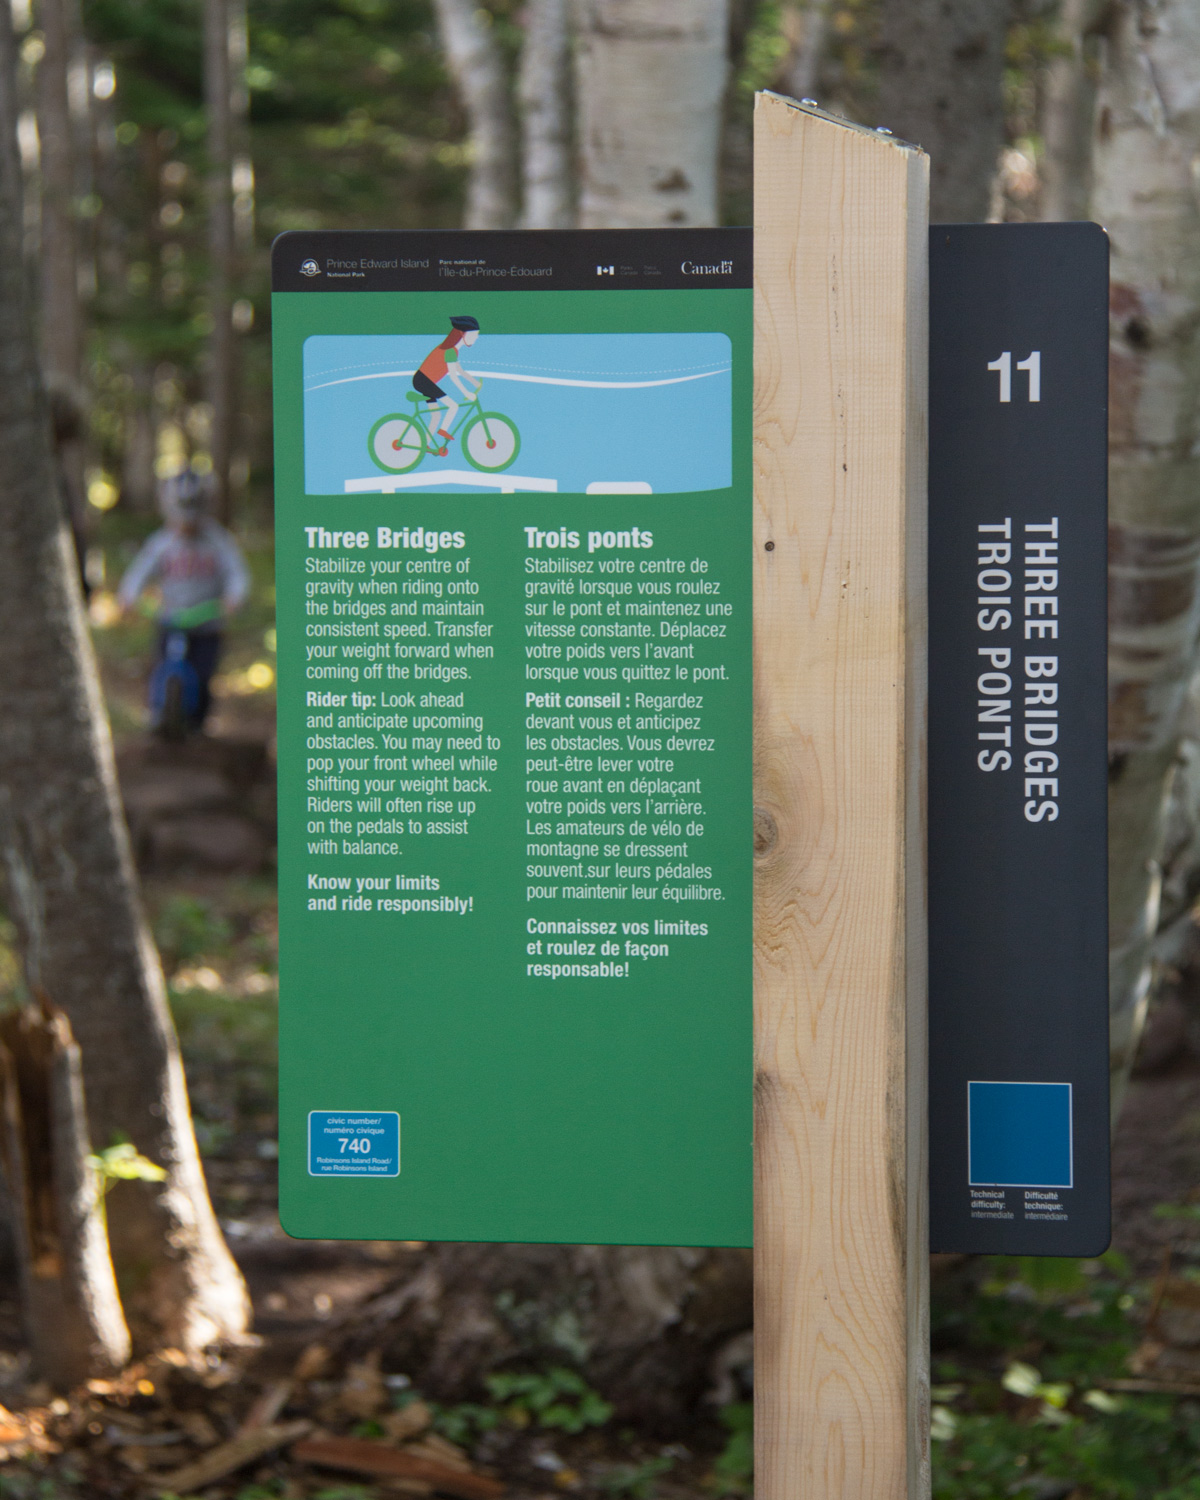 LEARN TO MOUNTAIN BIKE Integral to the trail experience are landscaped elements which help people of all ages learn to mountain bike. Signs indicate the difficulty of each feature, explain how it is to be used, and give tips to help people improve their skills.